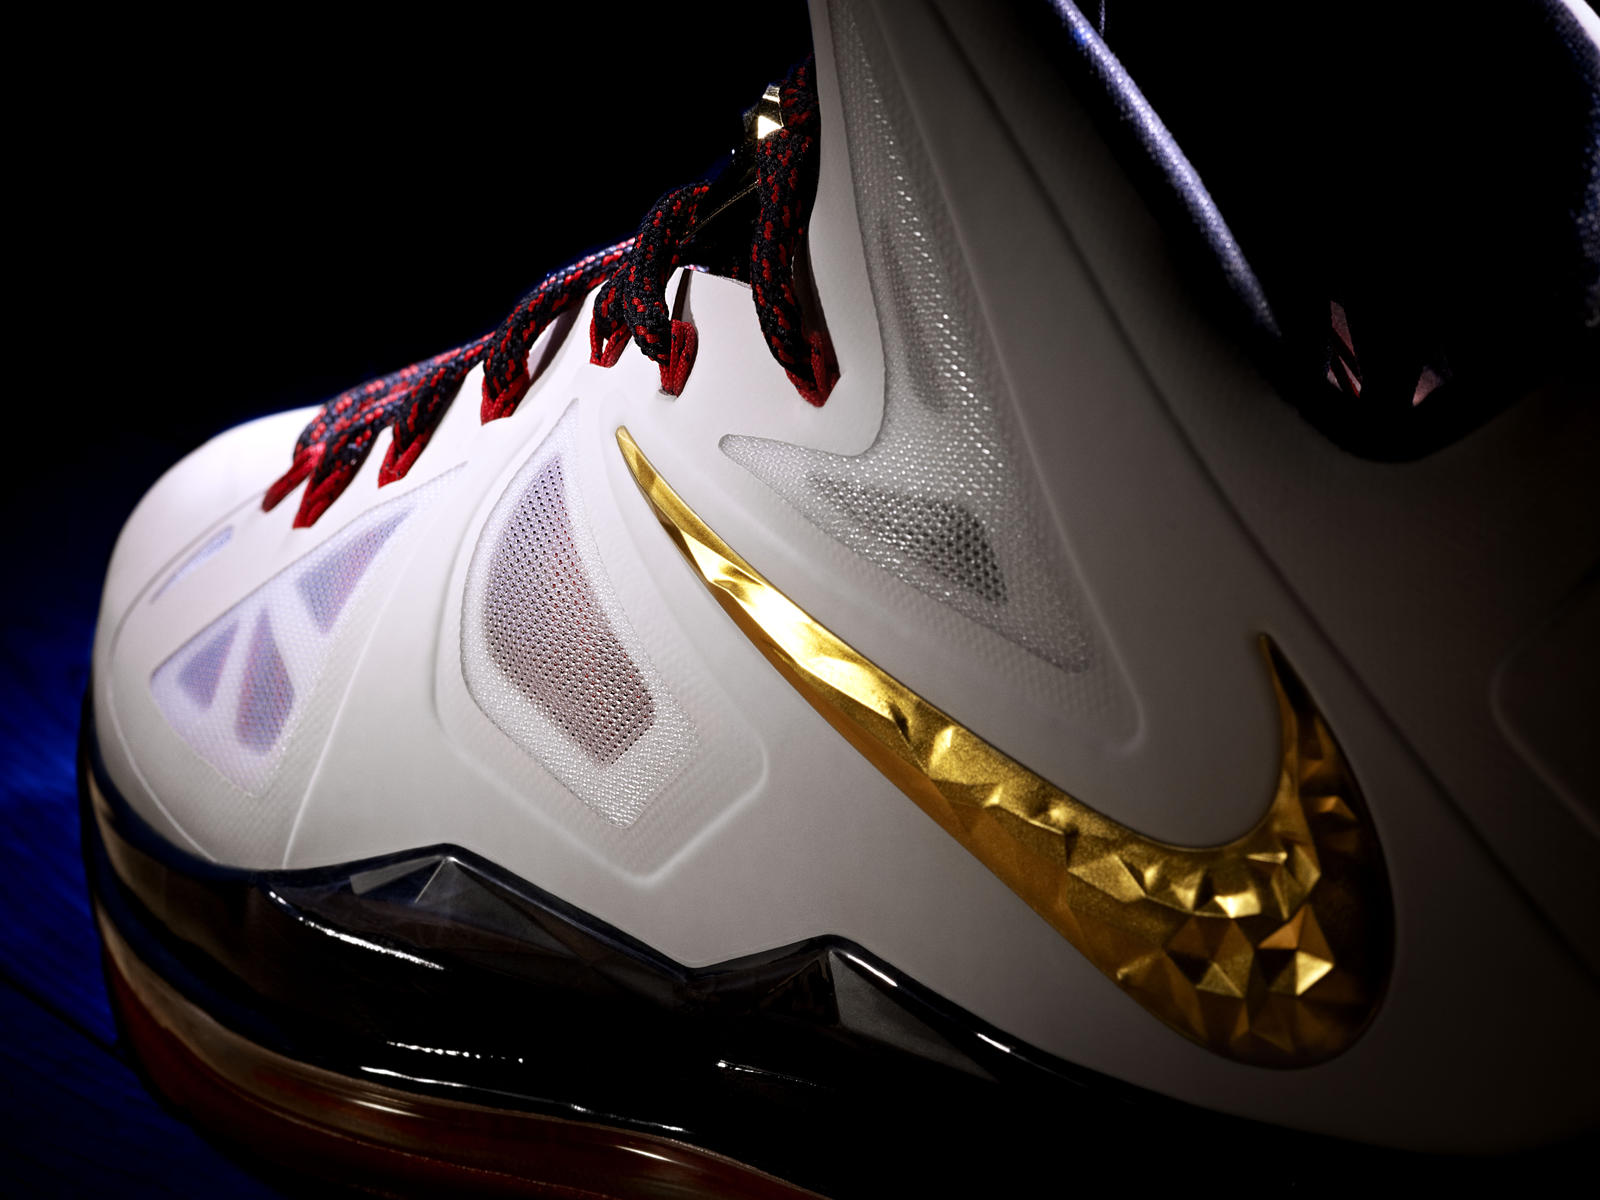 promo code a8a54 06129 LeBron James Debuts the LEBRON X - Nike News